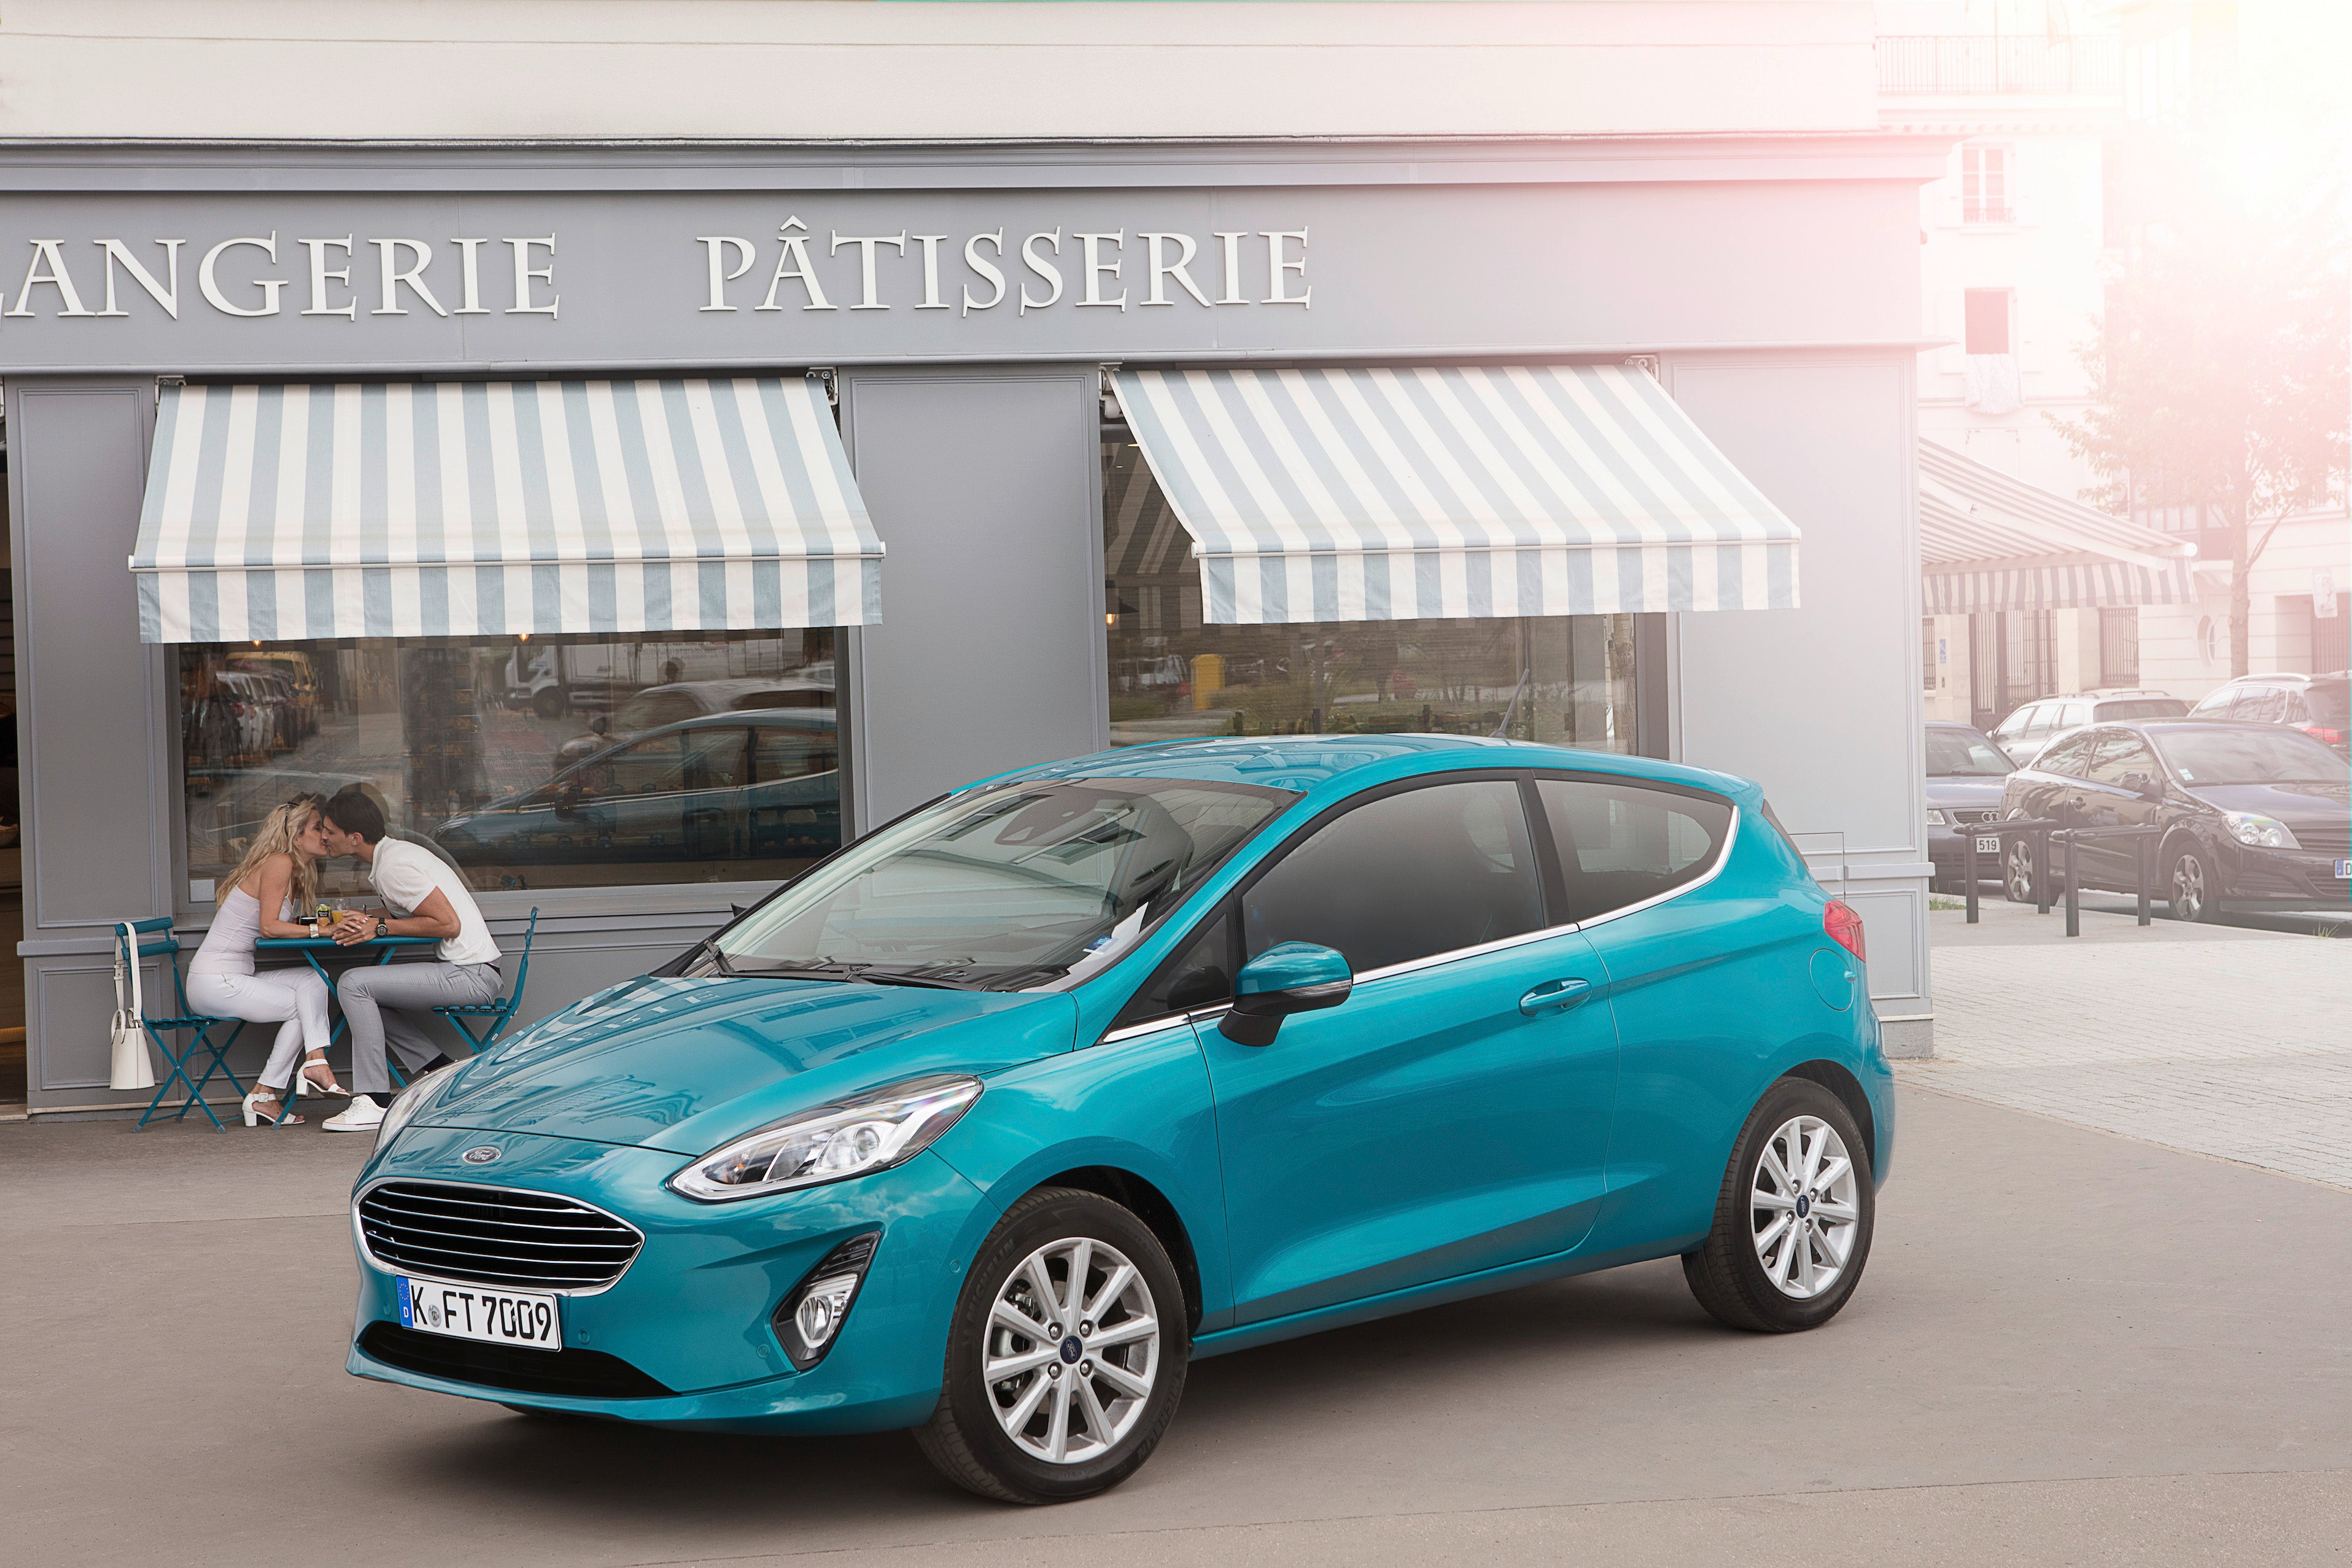 A teal 2018 Ford Fiesta hatchback, parked in front of a bakery in France